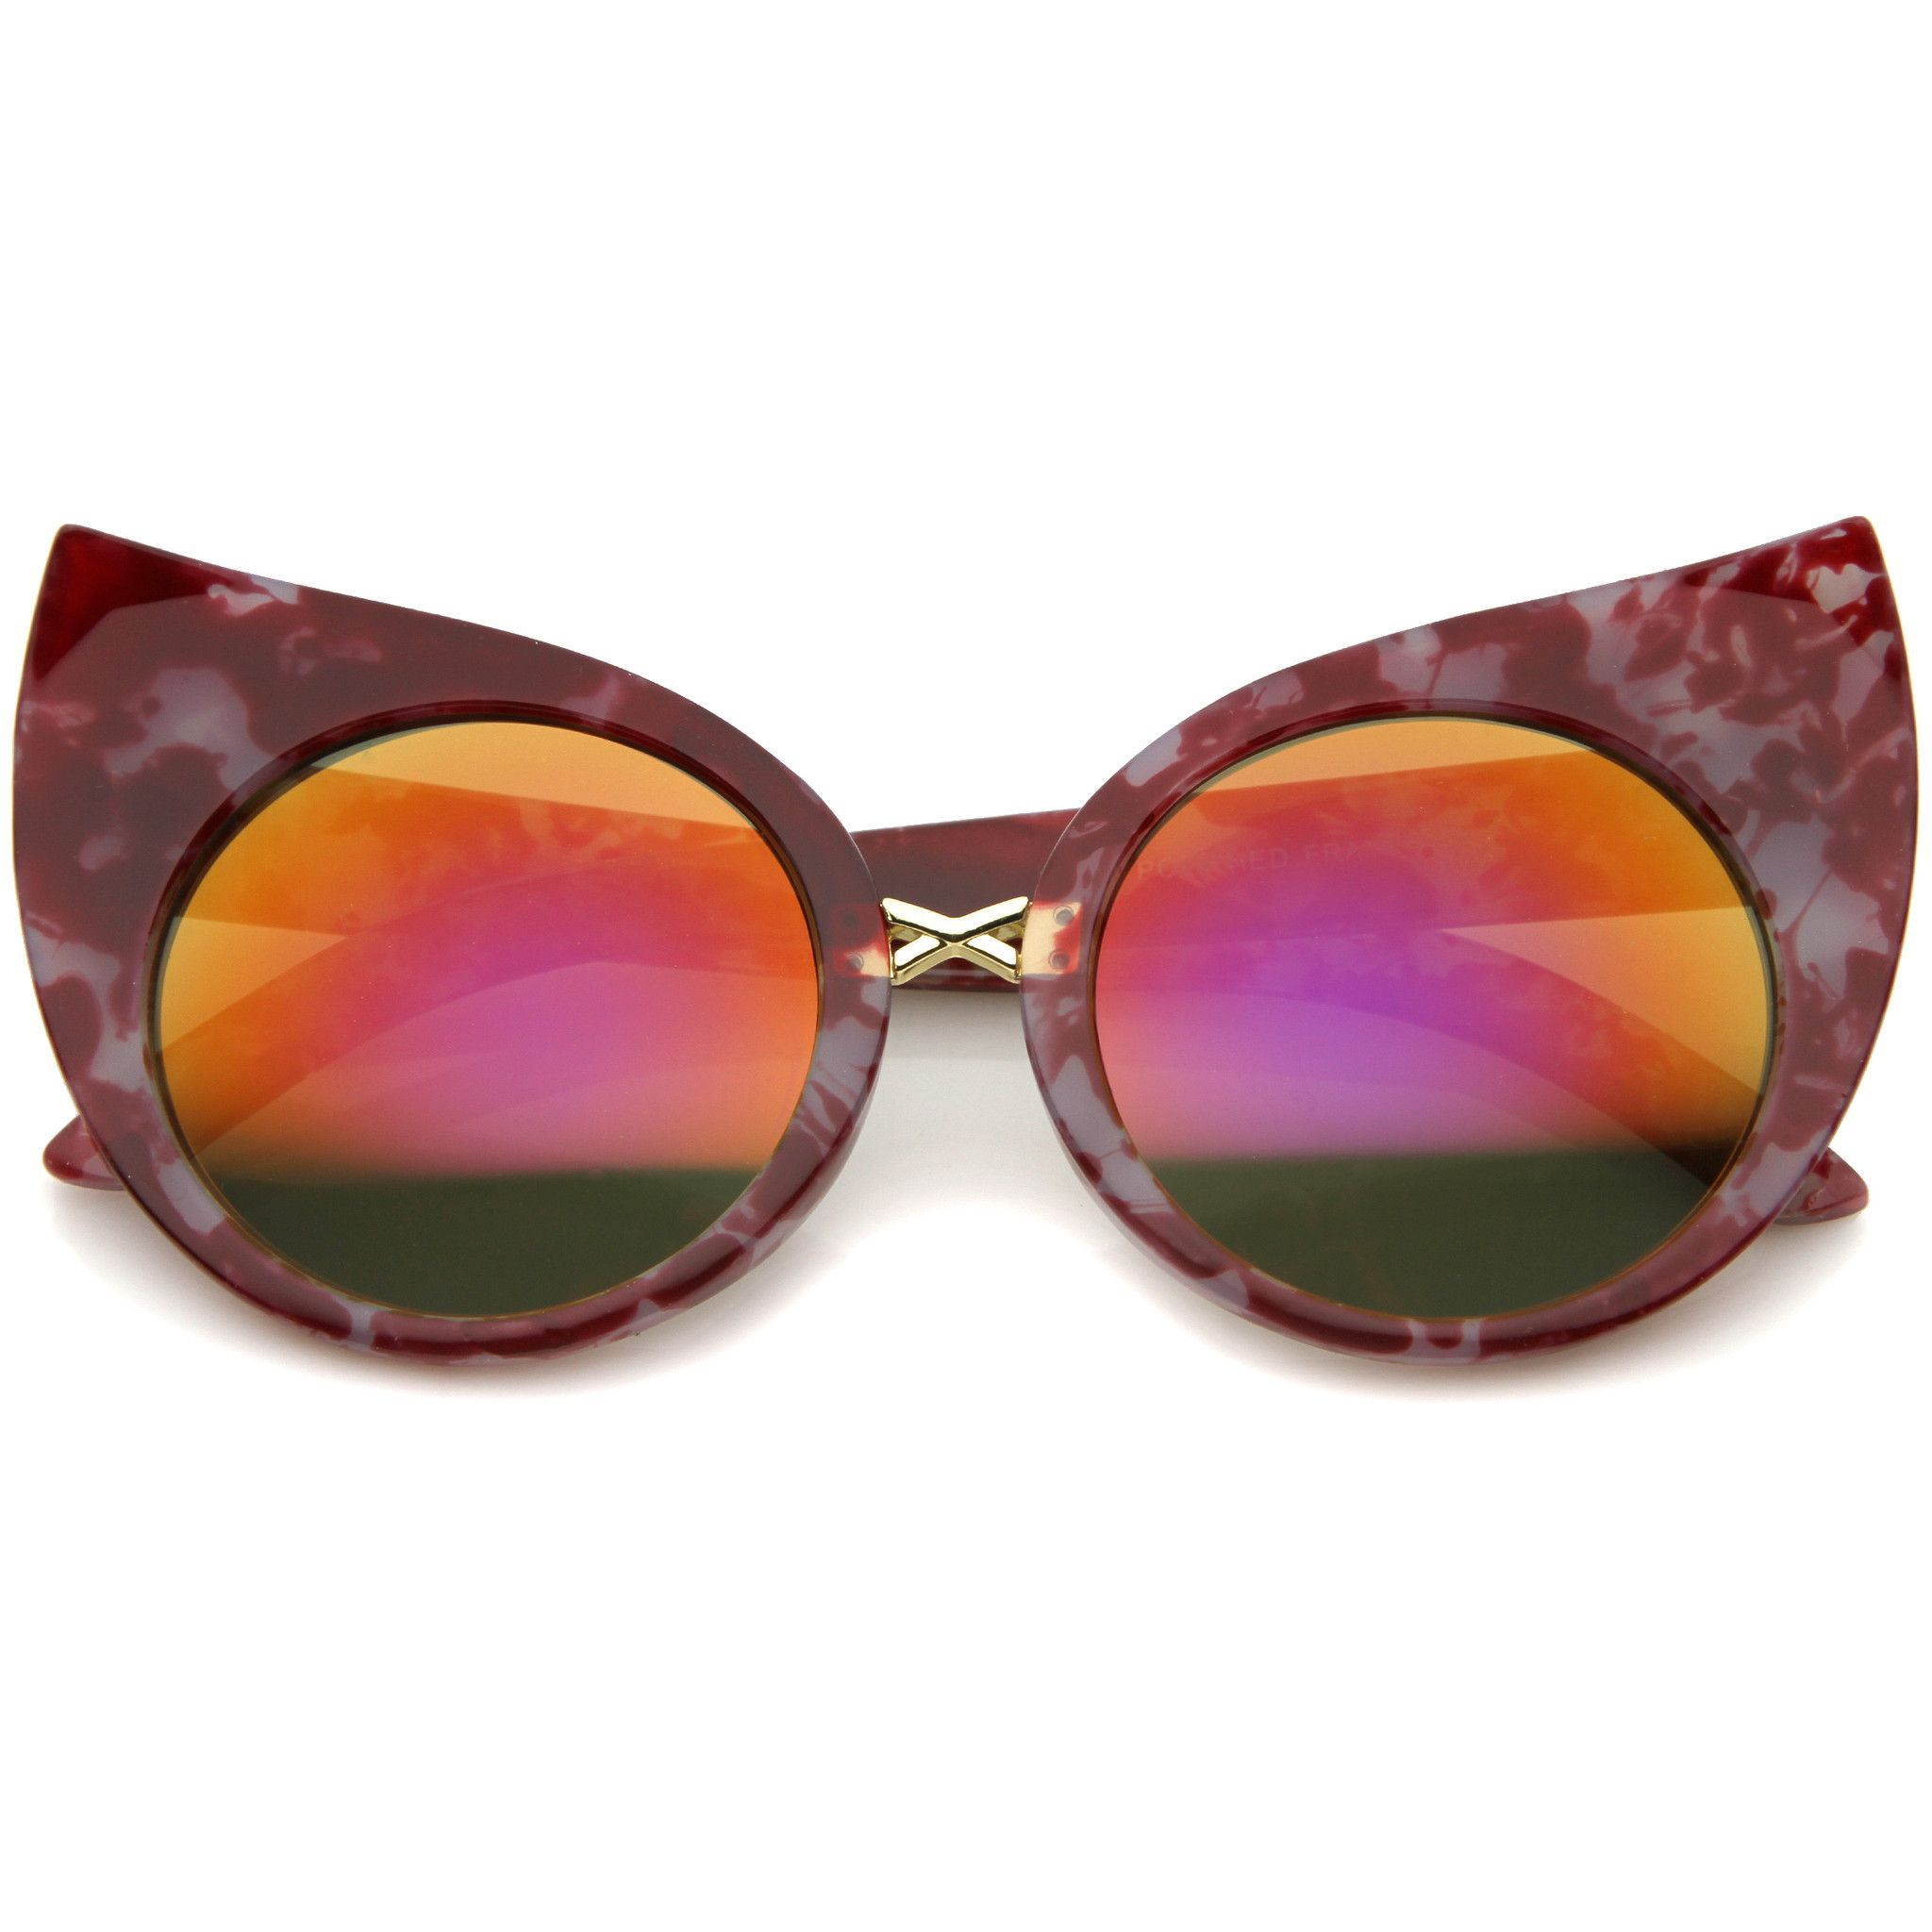 Womens Fashion Bold Marble Frame Mirrored Lens Round Cat Eye Sunglasses 51 Mm In 2020 Mirrored Lens Sunglasses Cat Eye Sunglasses Mirrored Lens